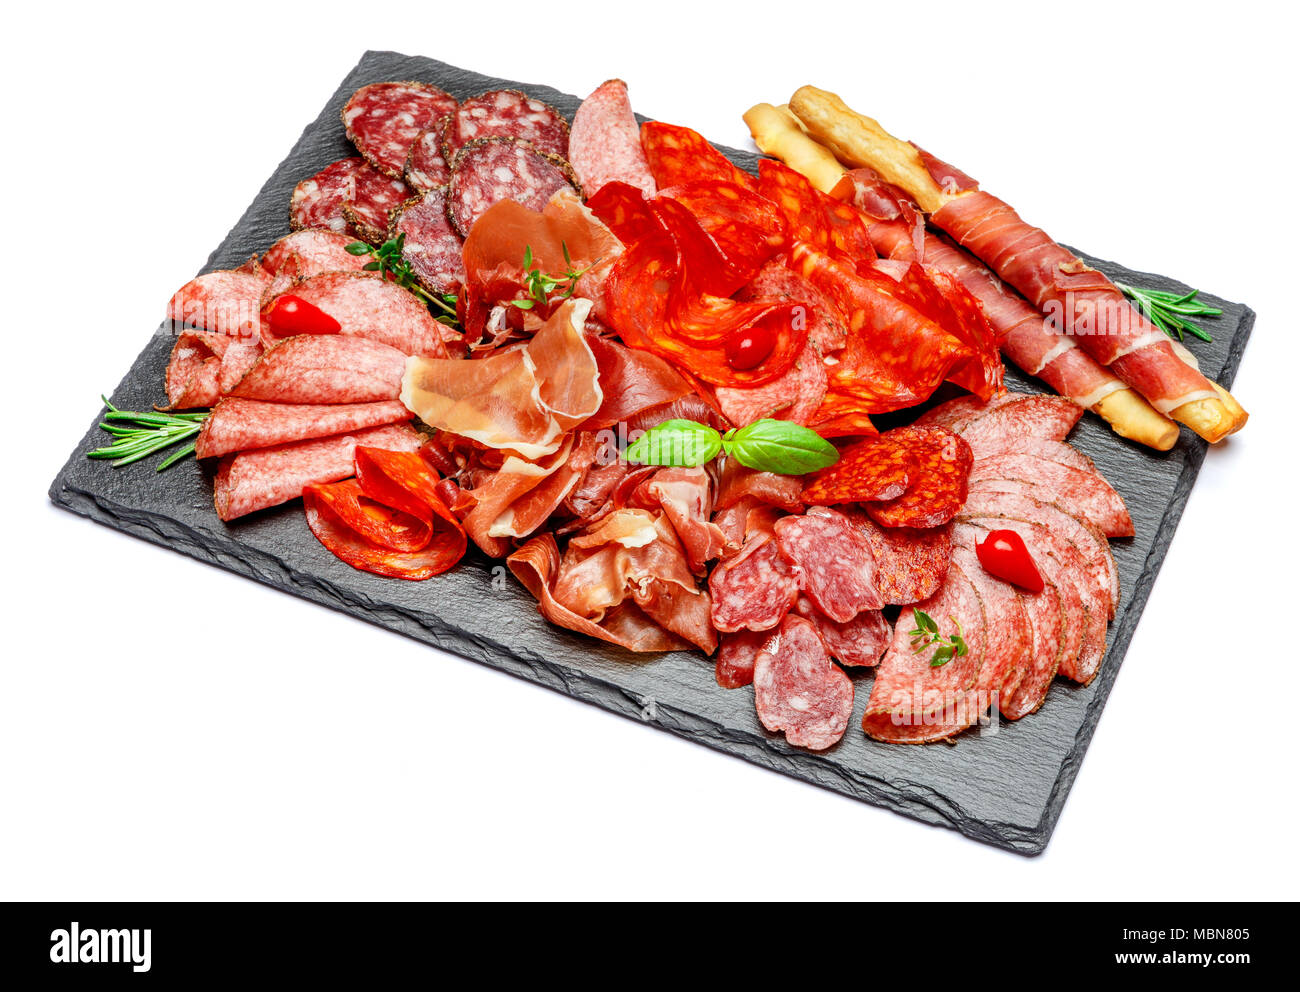 Cold meat plate with salami and chorizo sausage and parma - Stock Image